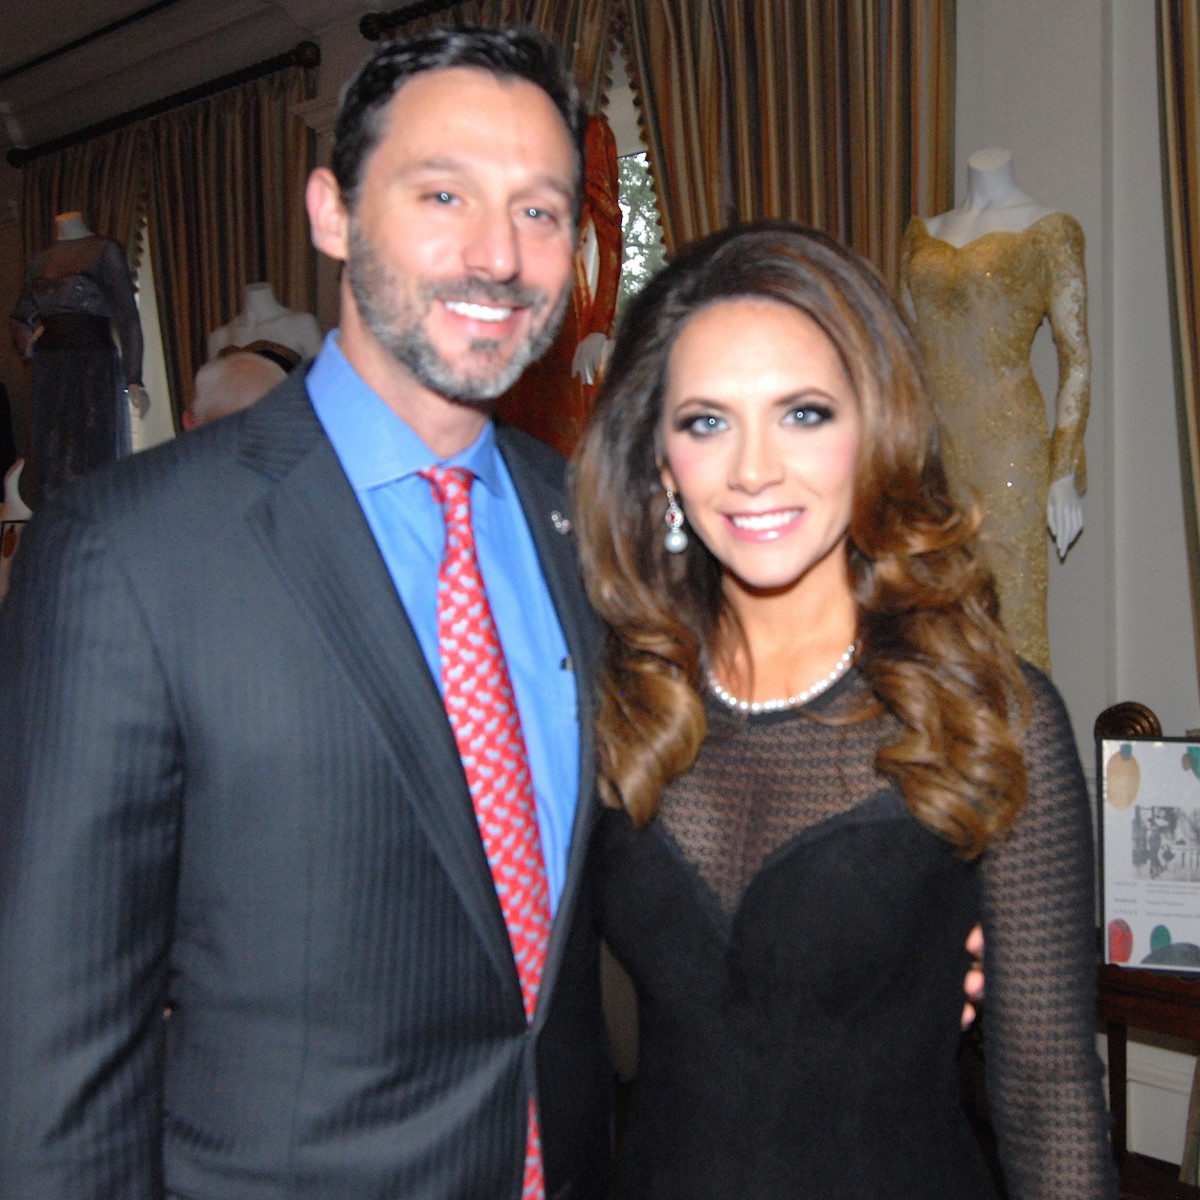 Brad and Joanna Marks at Salute to Retail Luncheon